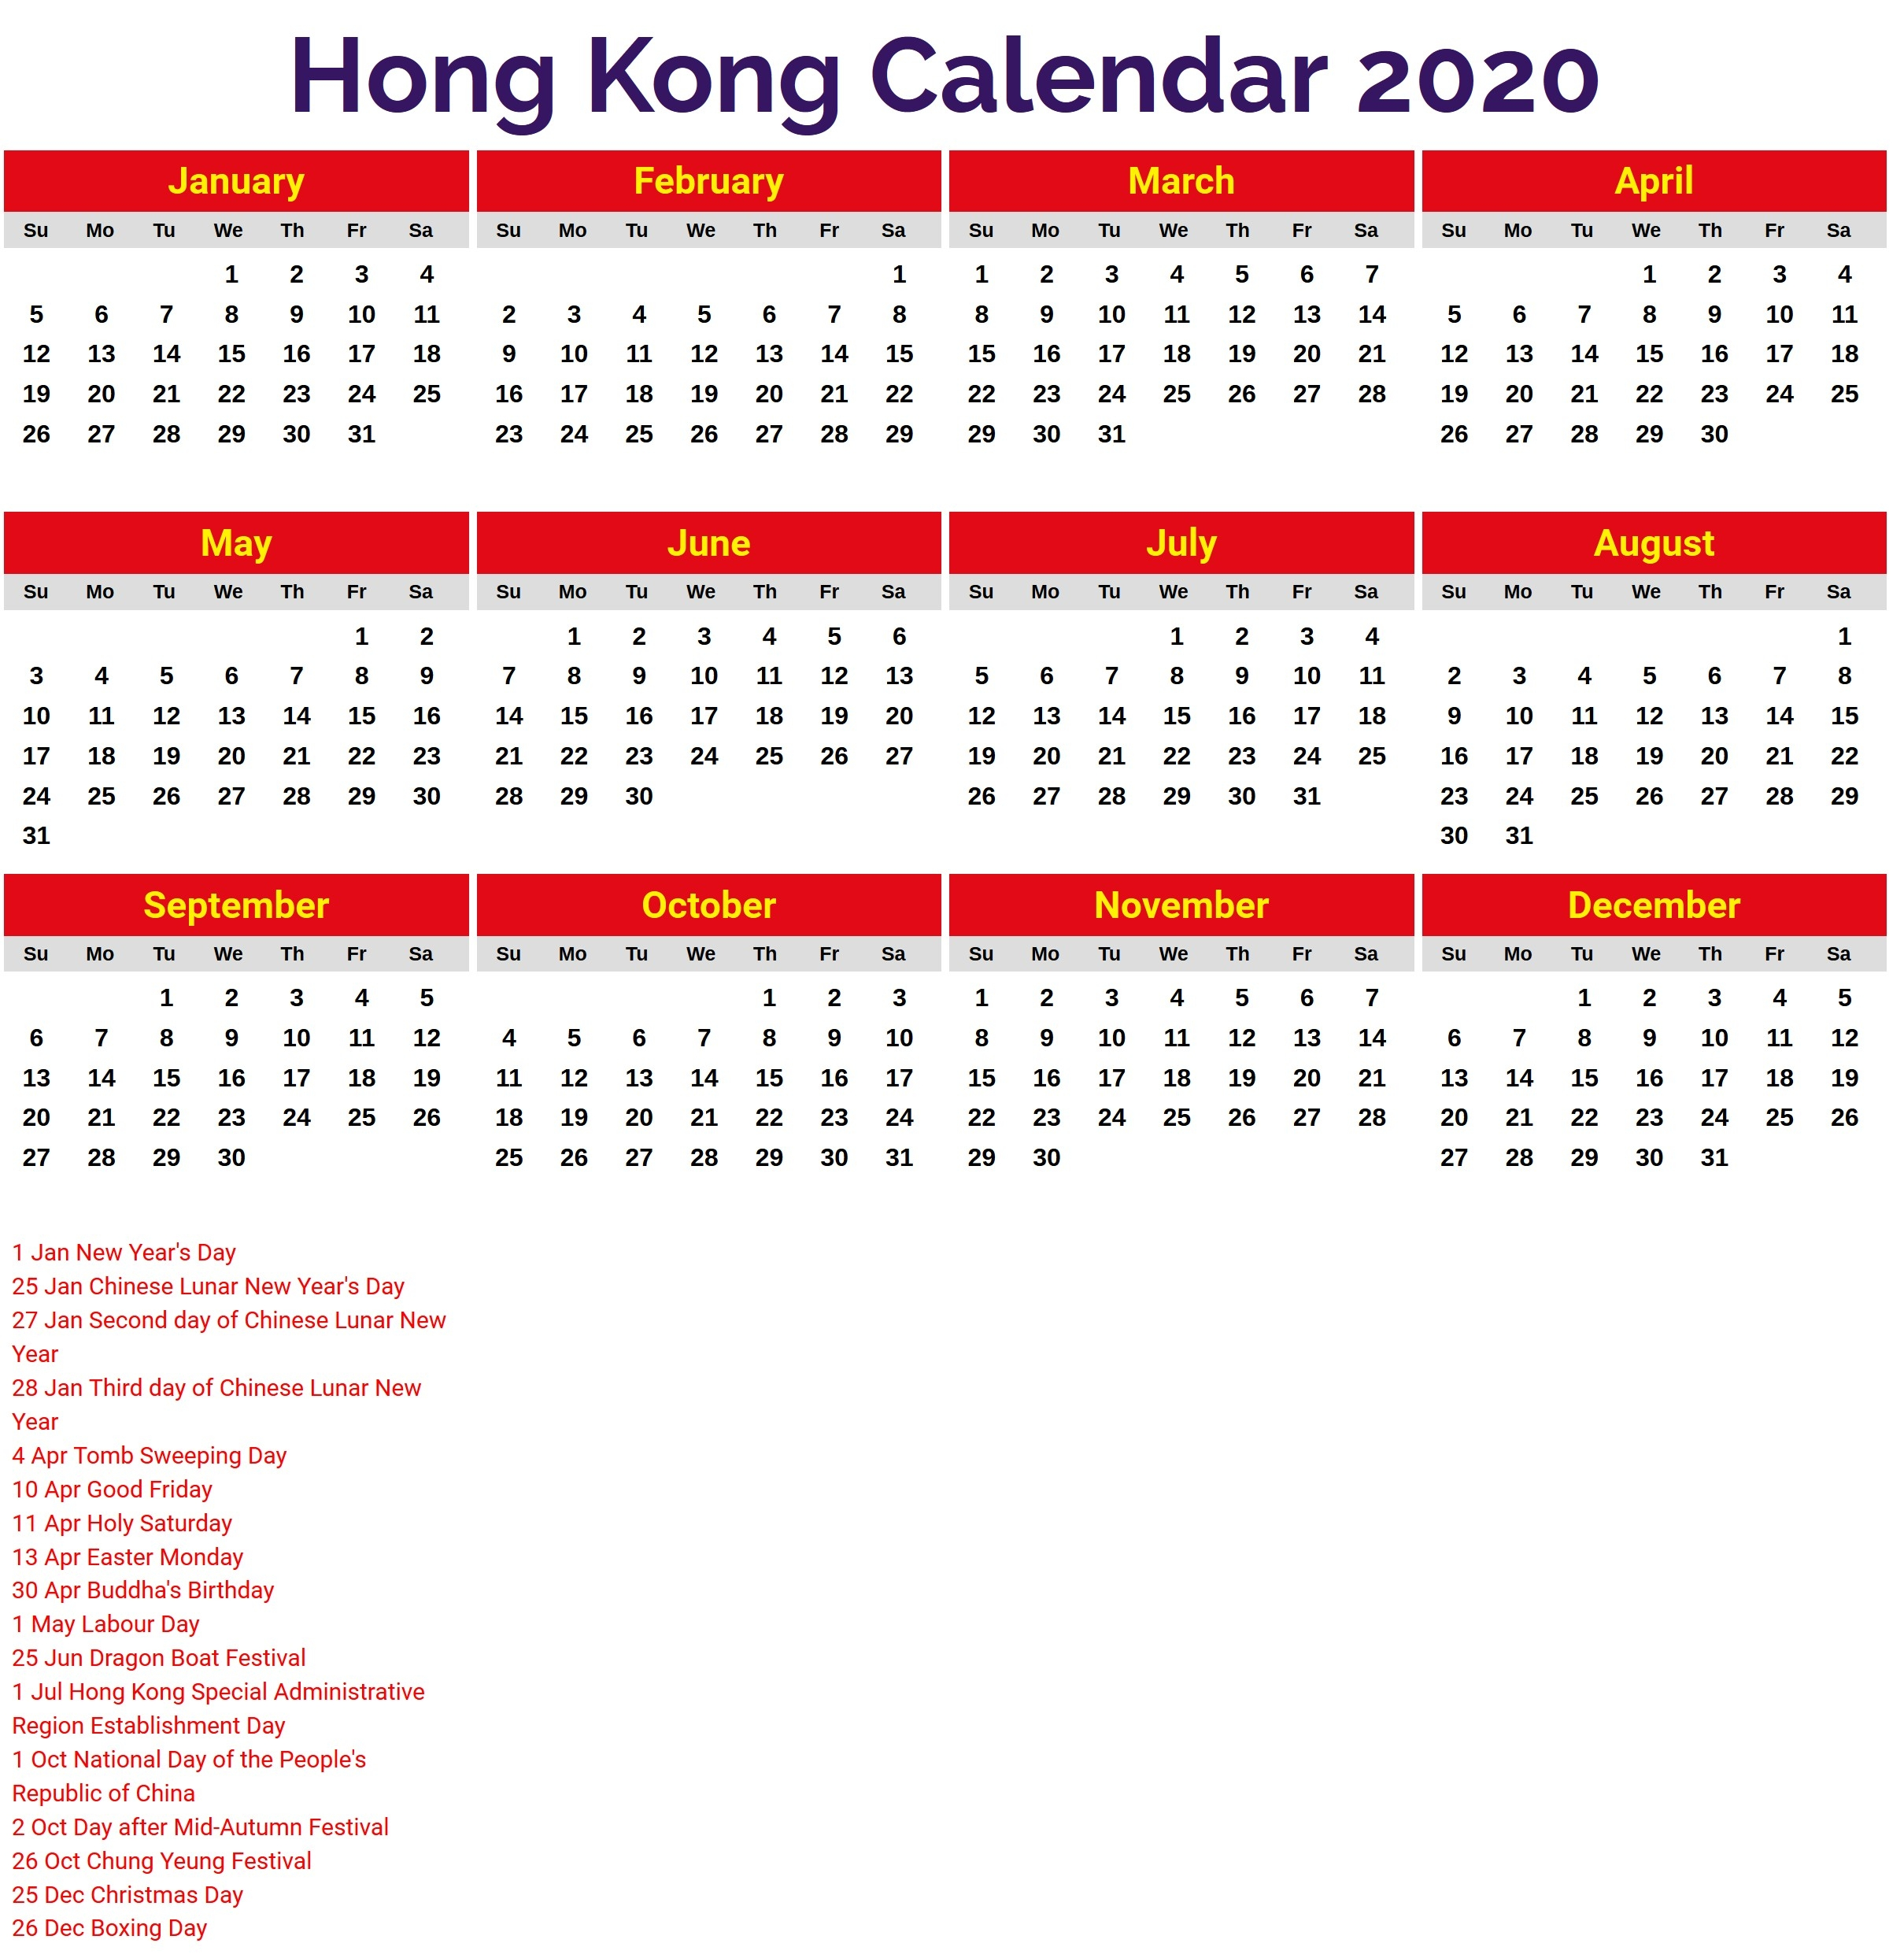 2020 Calendar Hong Kong – Printable Year Calendar-January 2020 Hong Kong Calendar